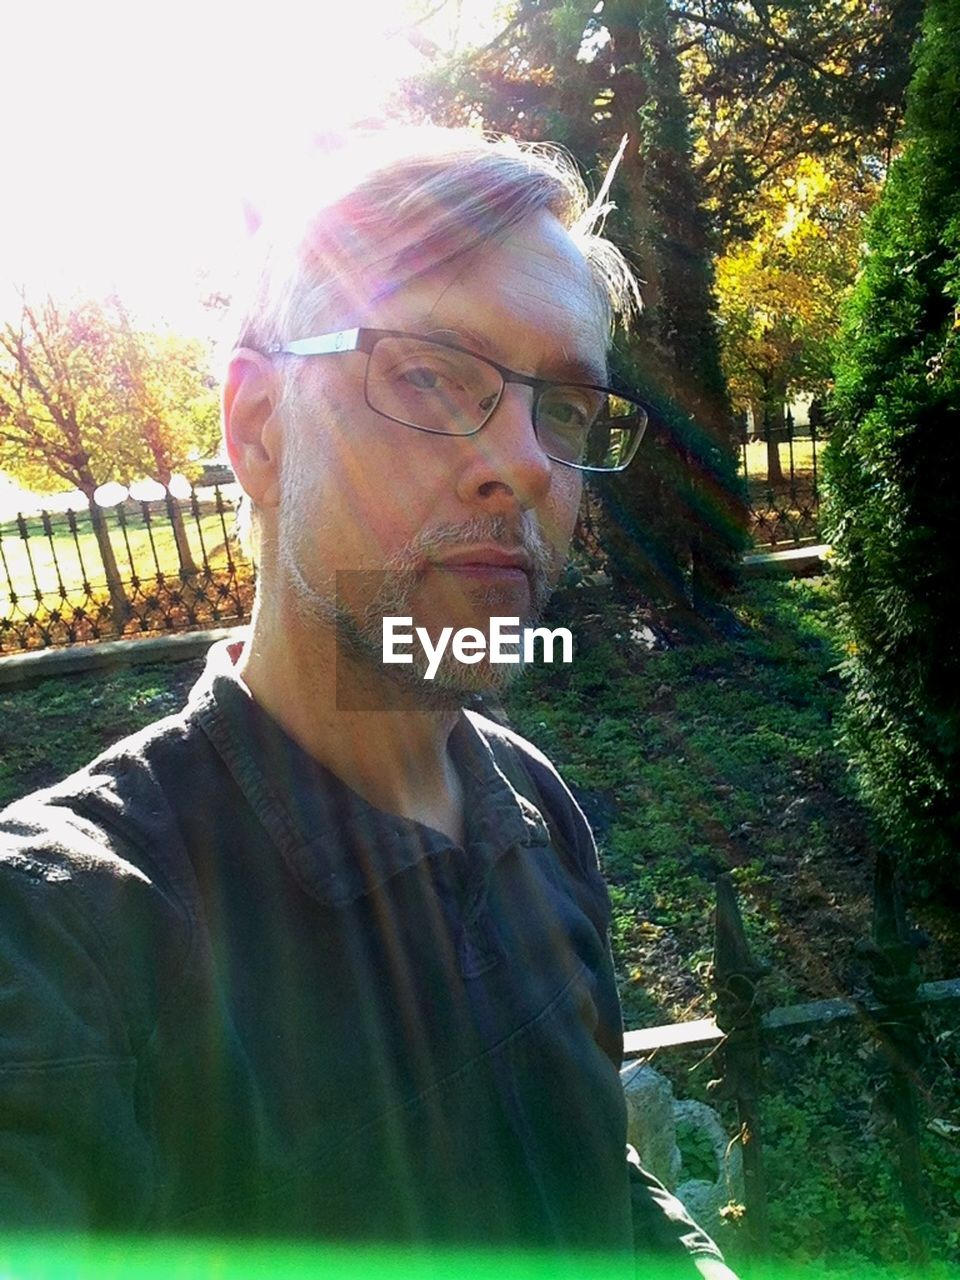 eyeglasses, real people, one person, leisure activity, serious, lifestyles, glasses, casual clothing, outdoors, sunlight, tree, day, mature men, portrait, looking at camera, beard, senior adult, mature adult, young adult, nature